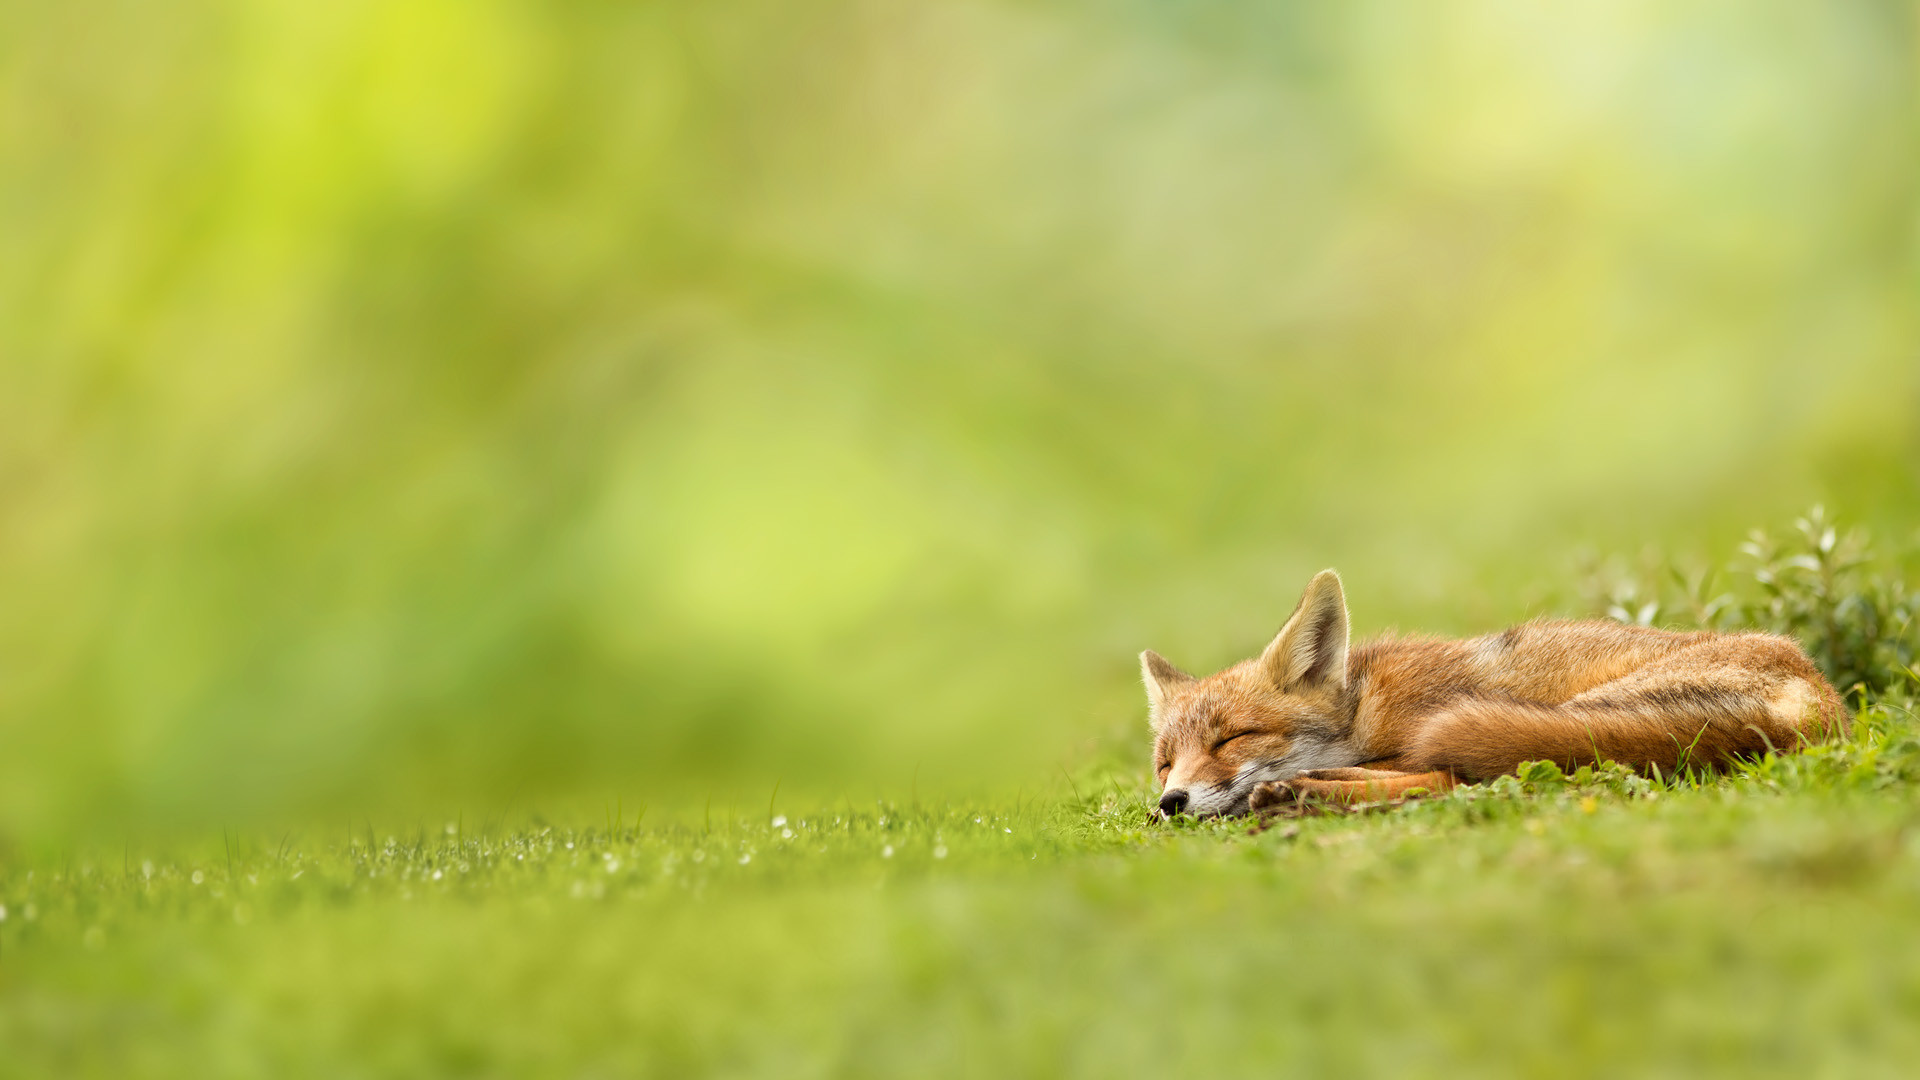 Peaceful Wallpapers High Quality Resolution …